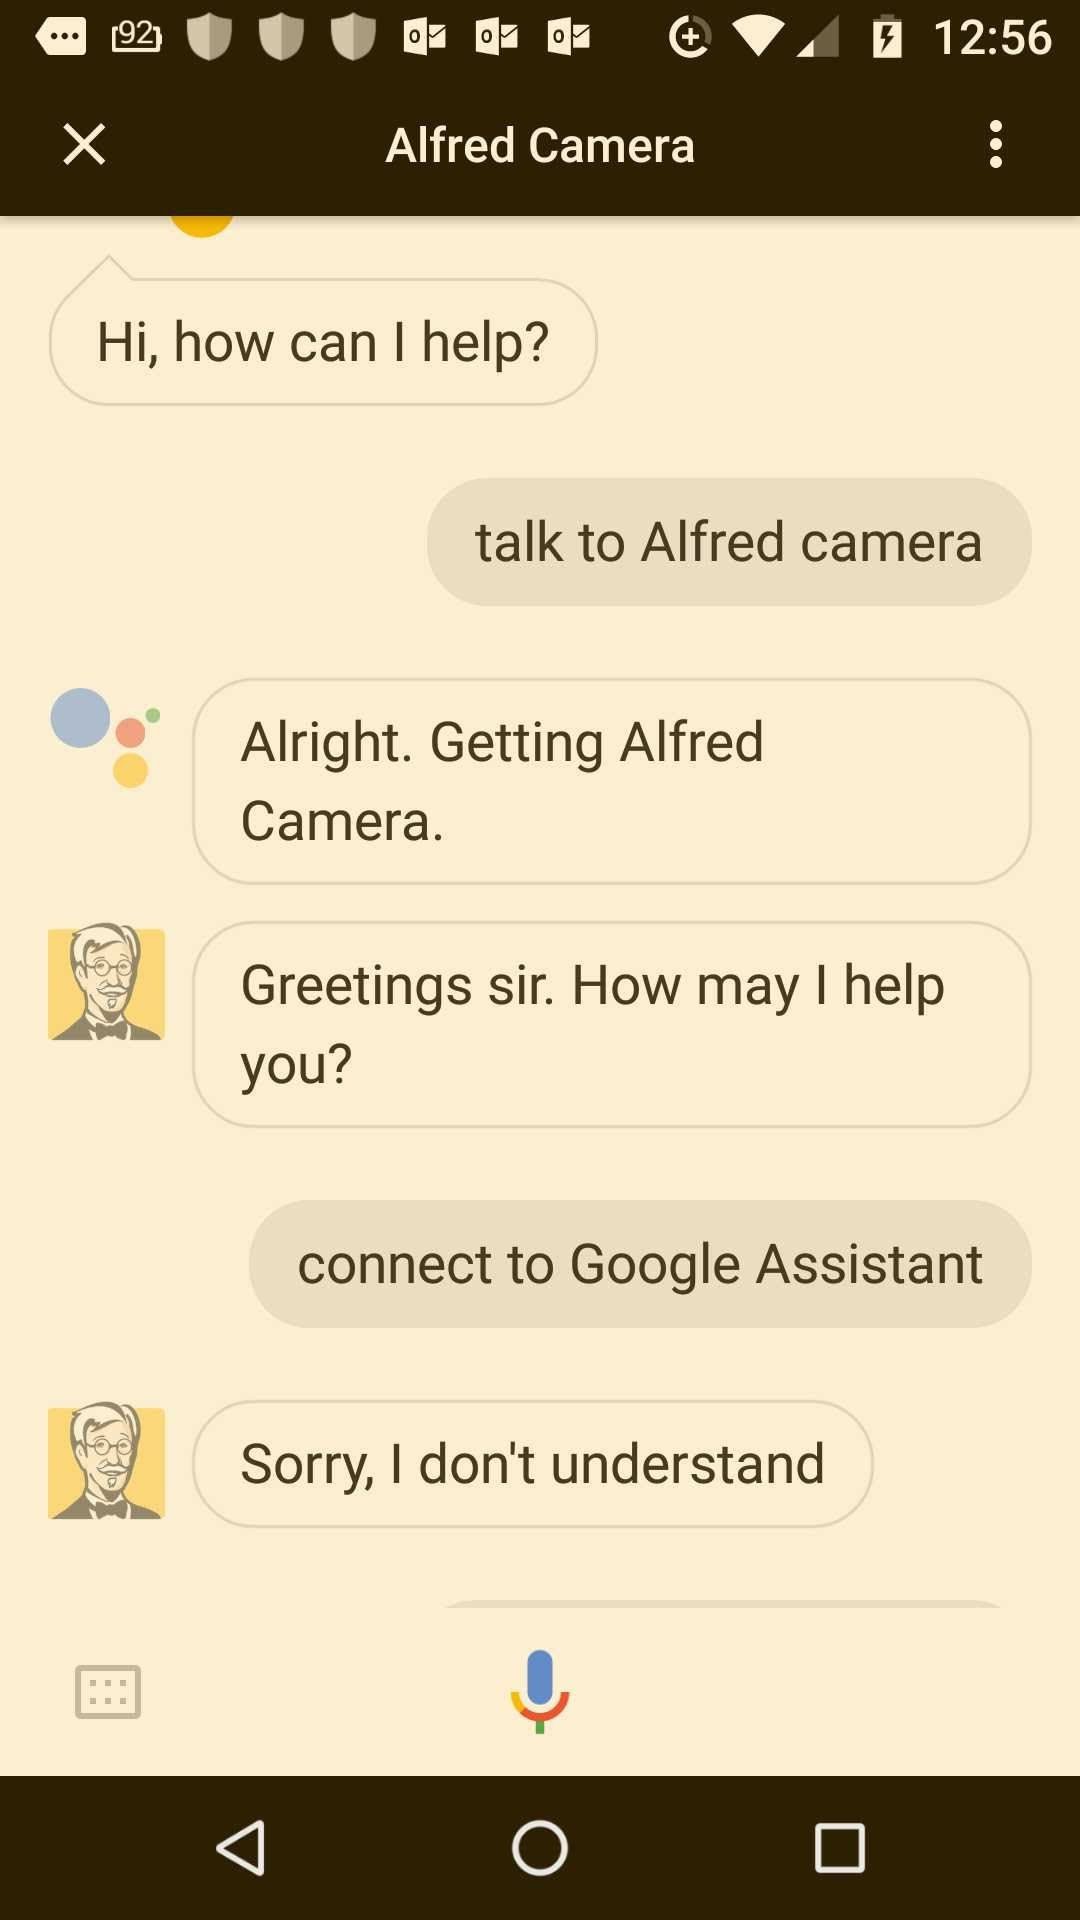 alfred google assit no connect